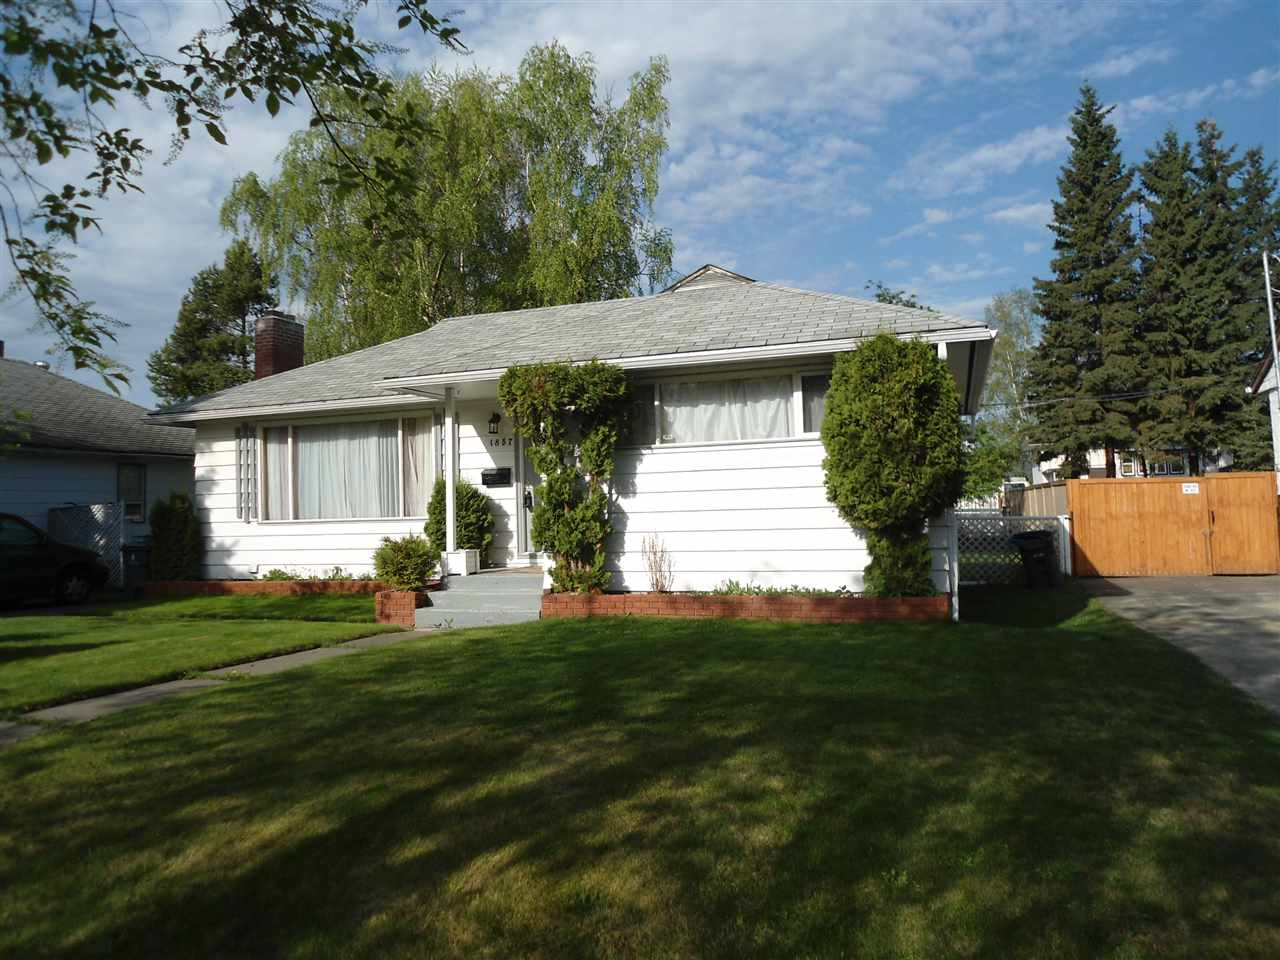 Main Photo: 1857 NORWOOD Street in Prince George: Connaught House for sale (PG City Central (Zone 72))  : MLS® # R2062159